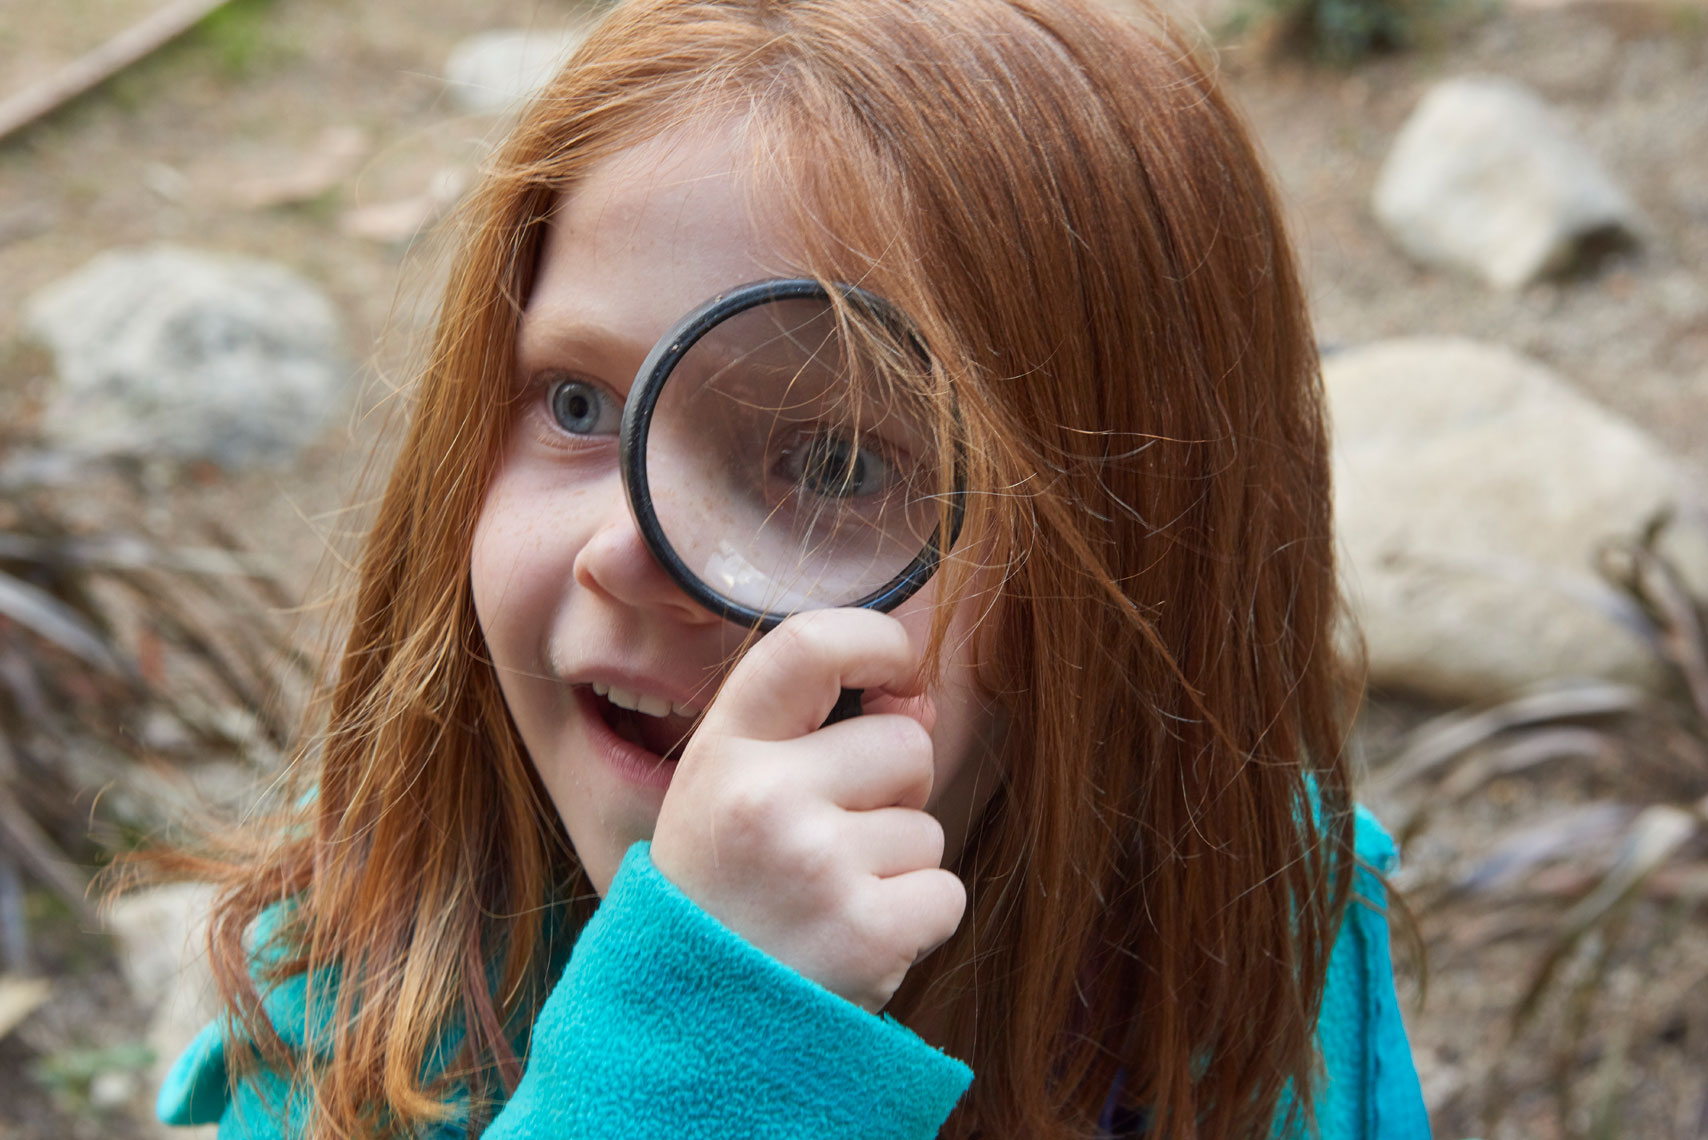 Young_girl_looking_through_magnifying_glass-by-annual-report-photographer-Joe-Atlas.